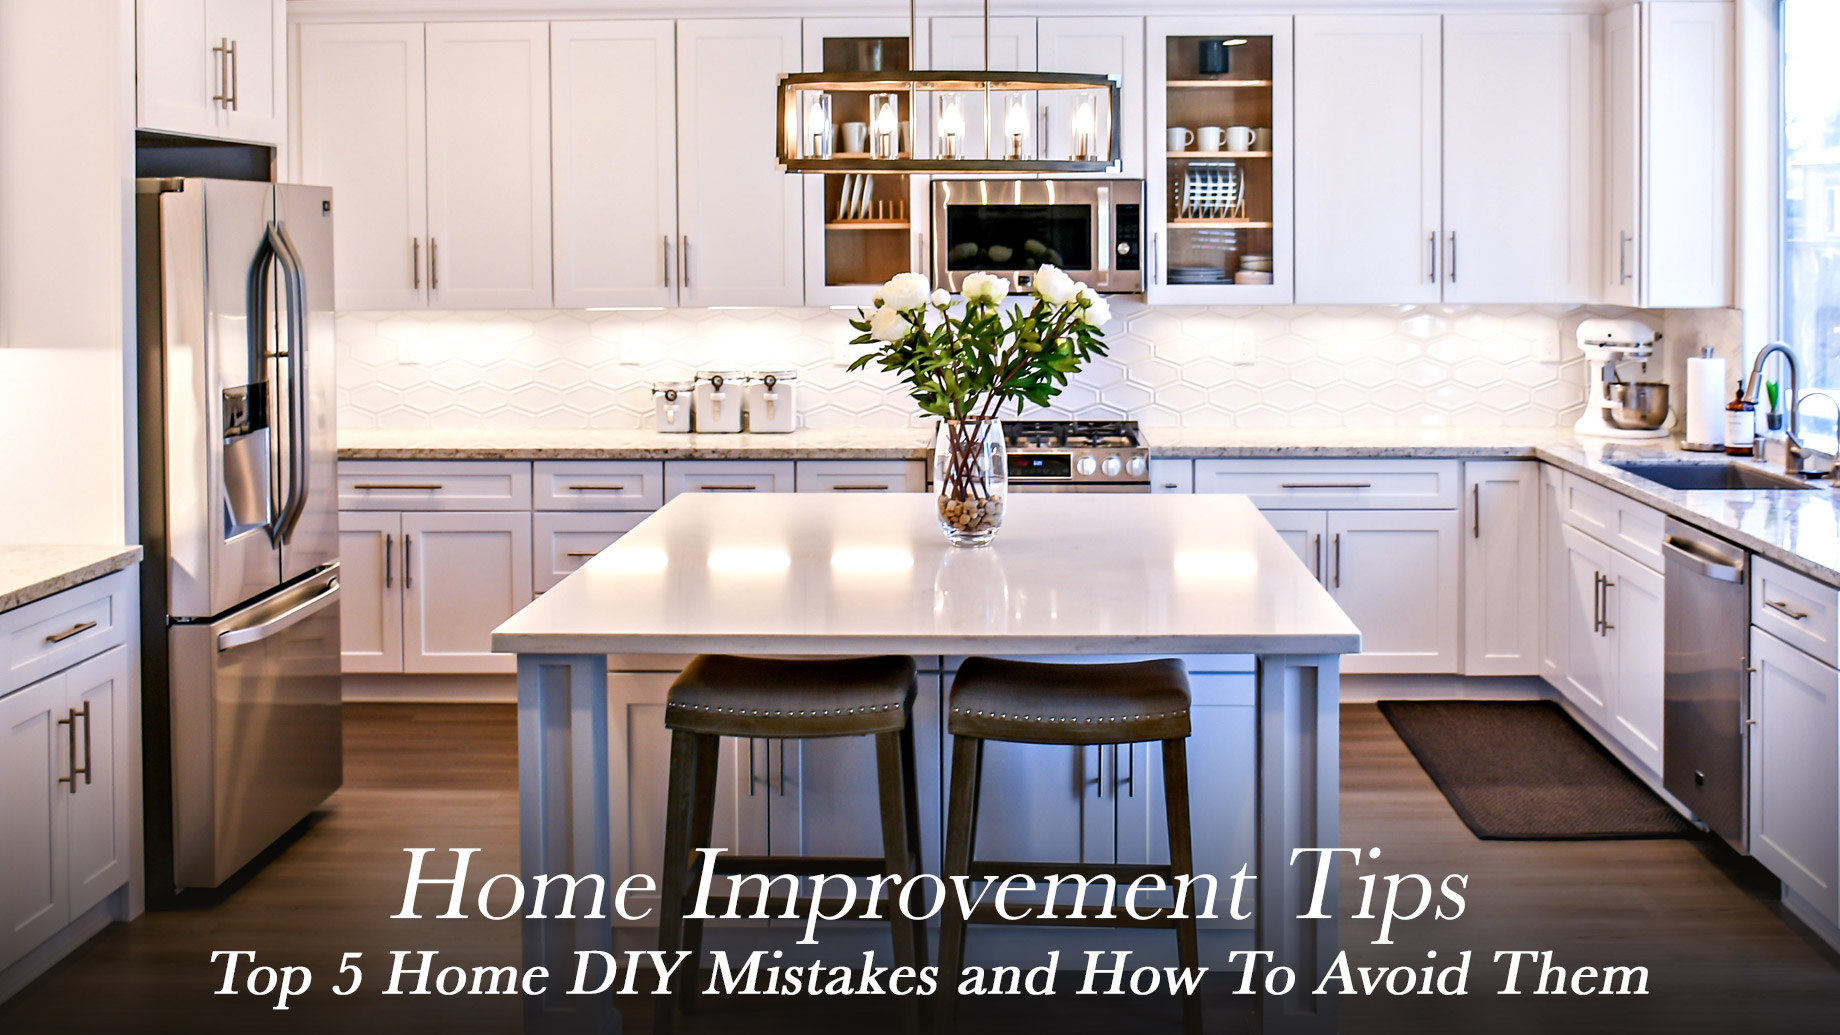 Home Improvement Tips - Top 5 Home DIY Mistakes and How To Avoid Them